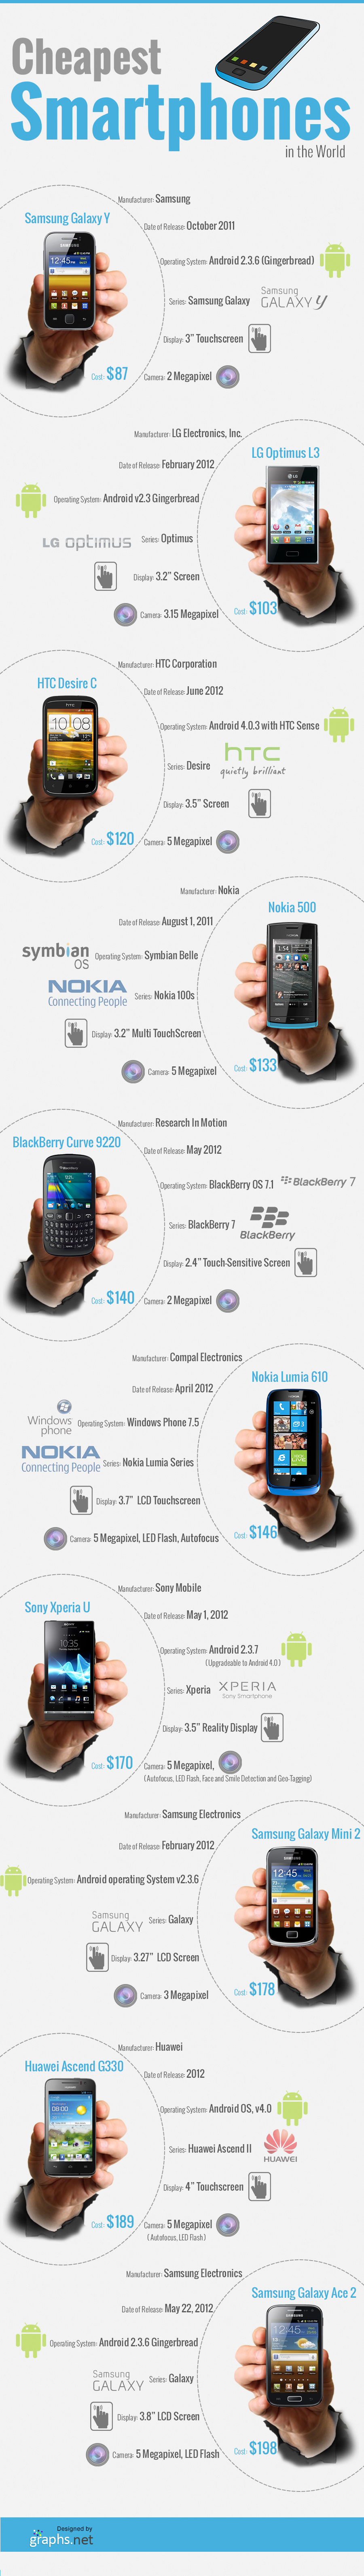 Cheapest Smartphones in the World